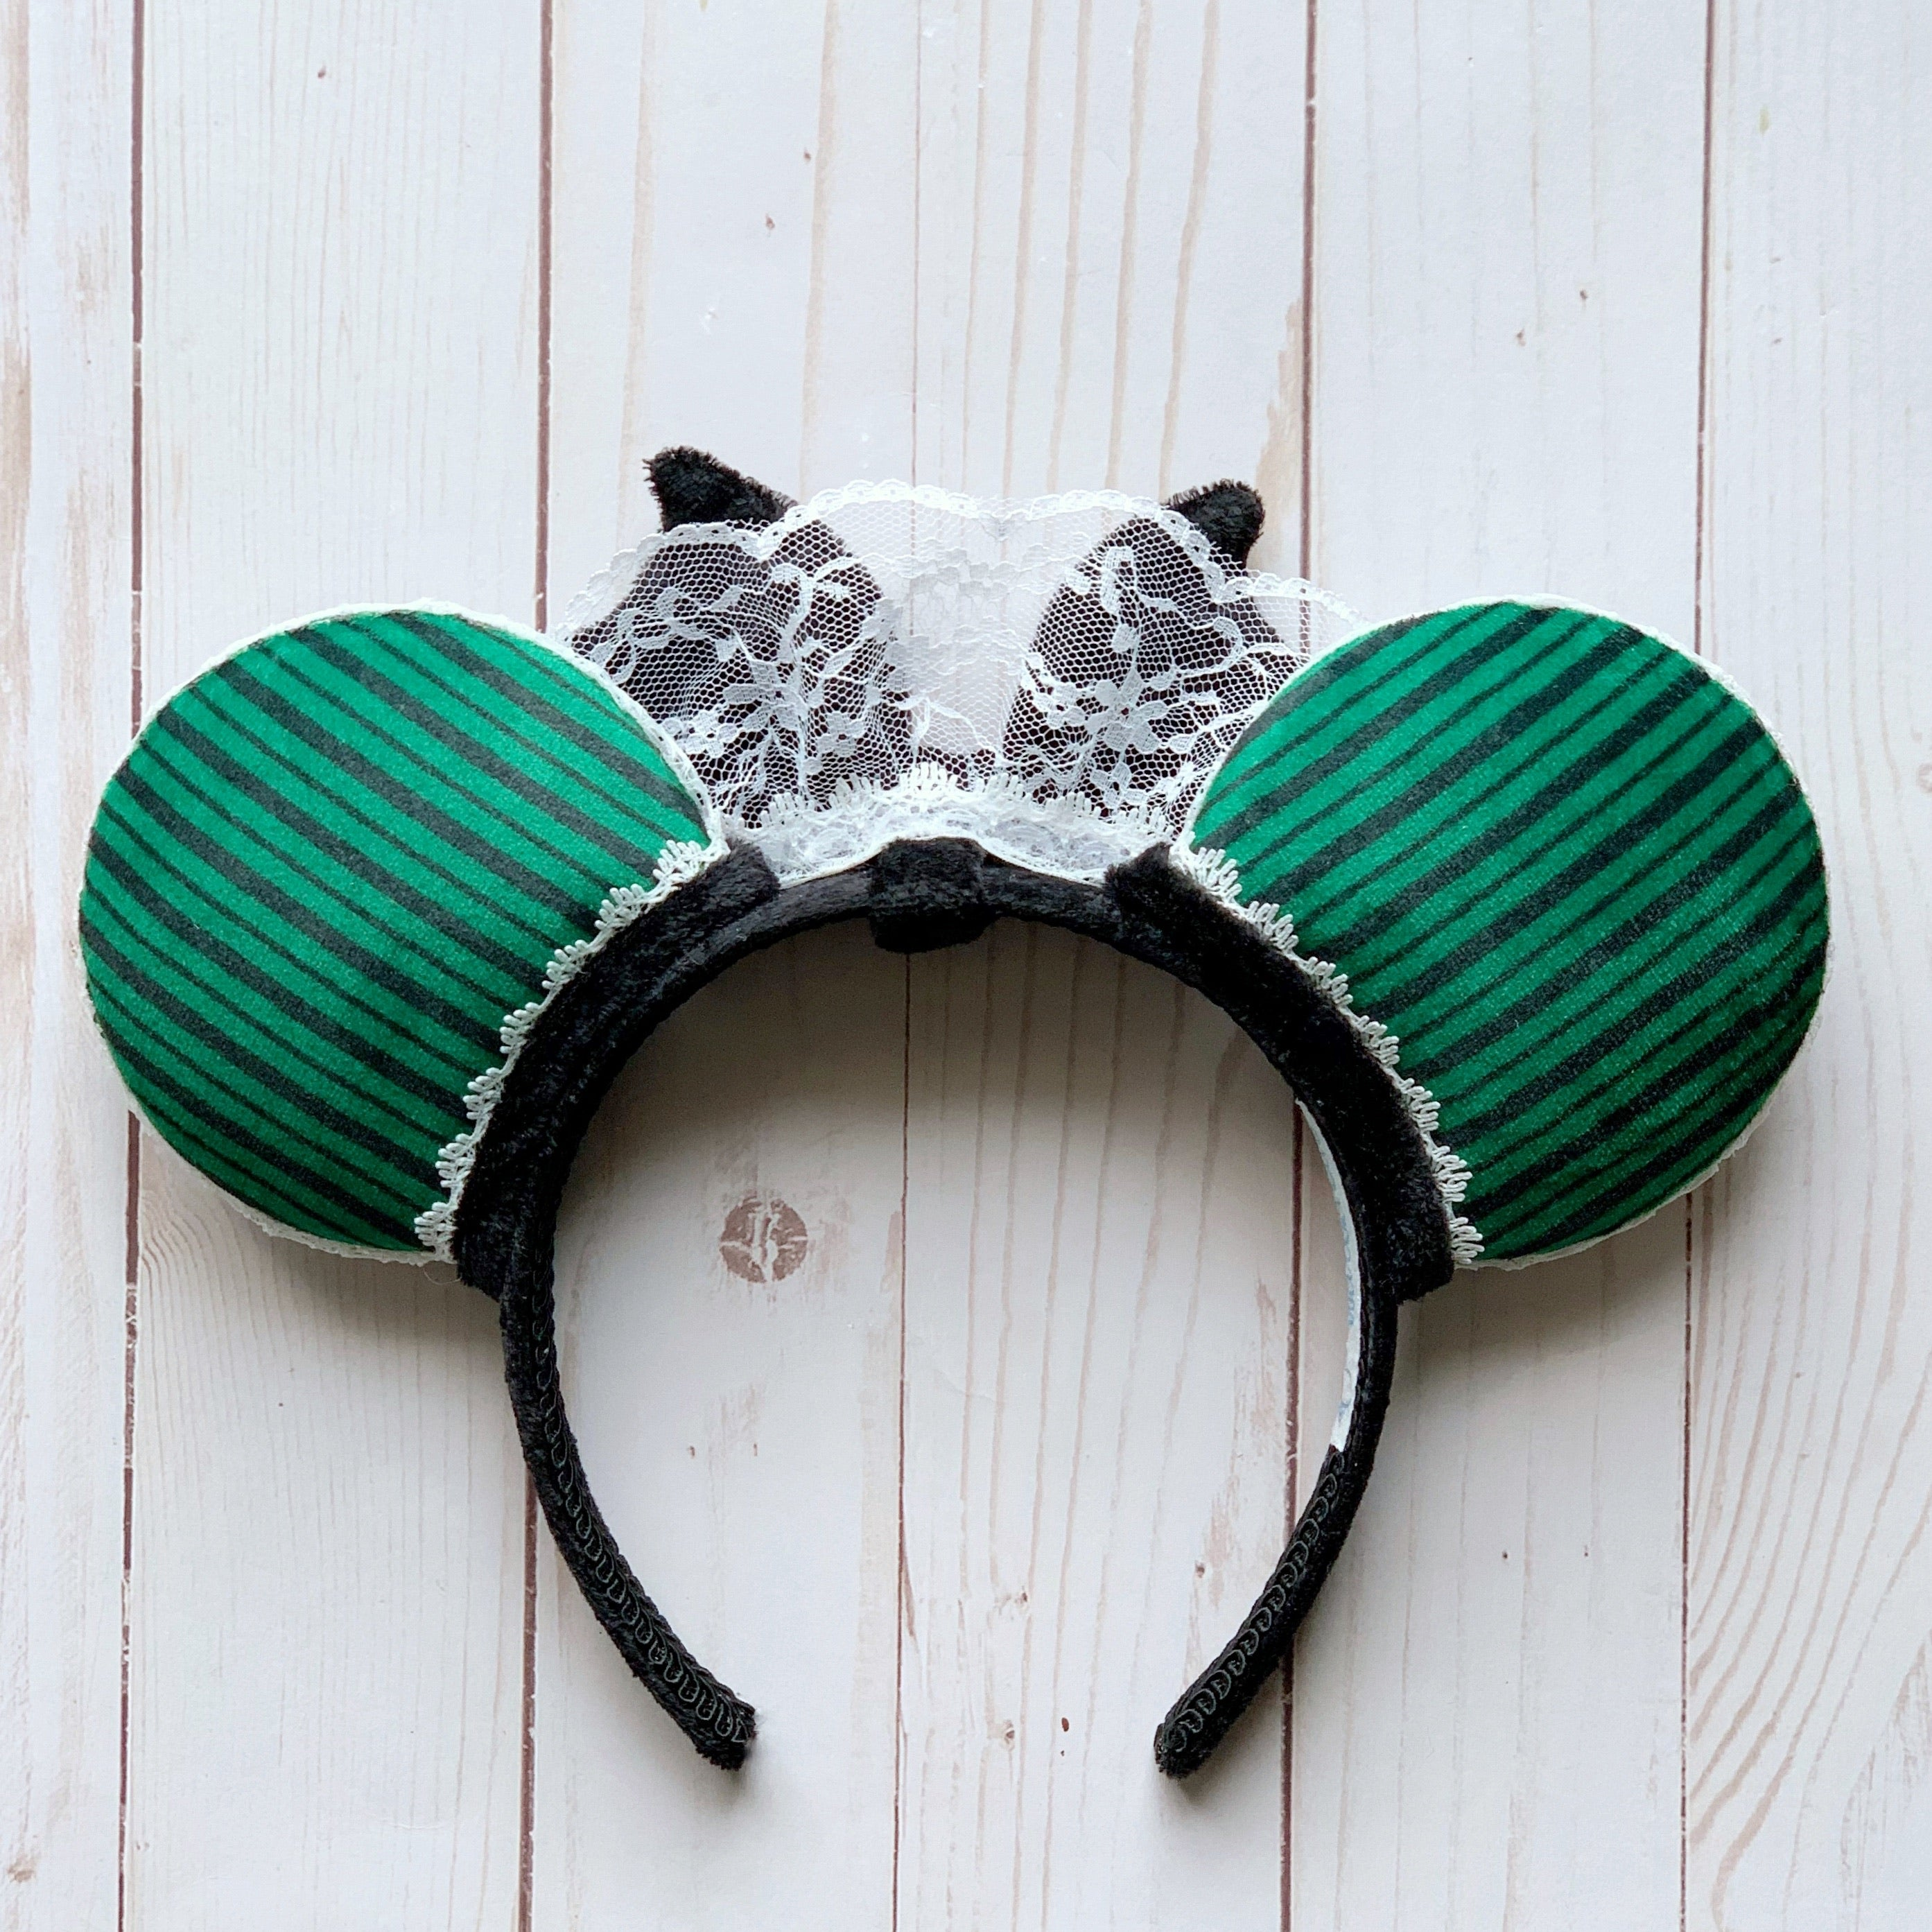 Mansion Maid Handmade Ears